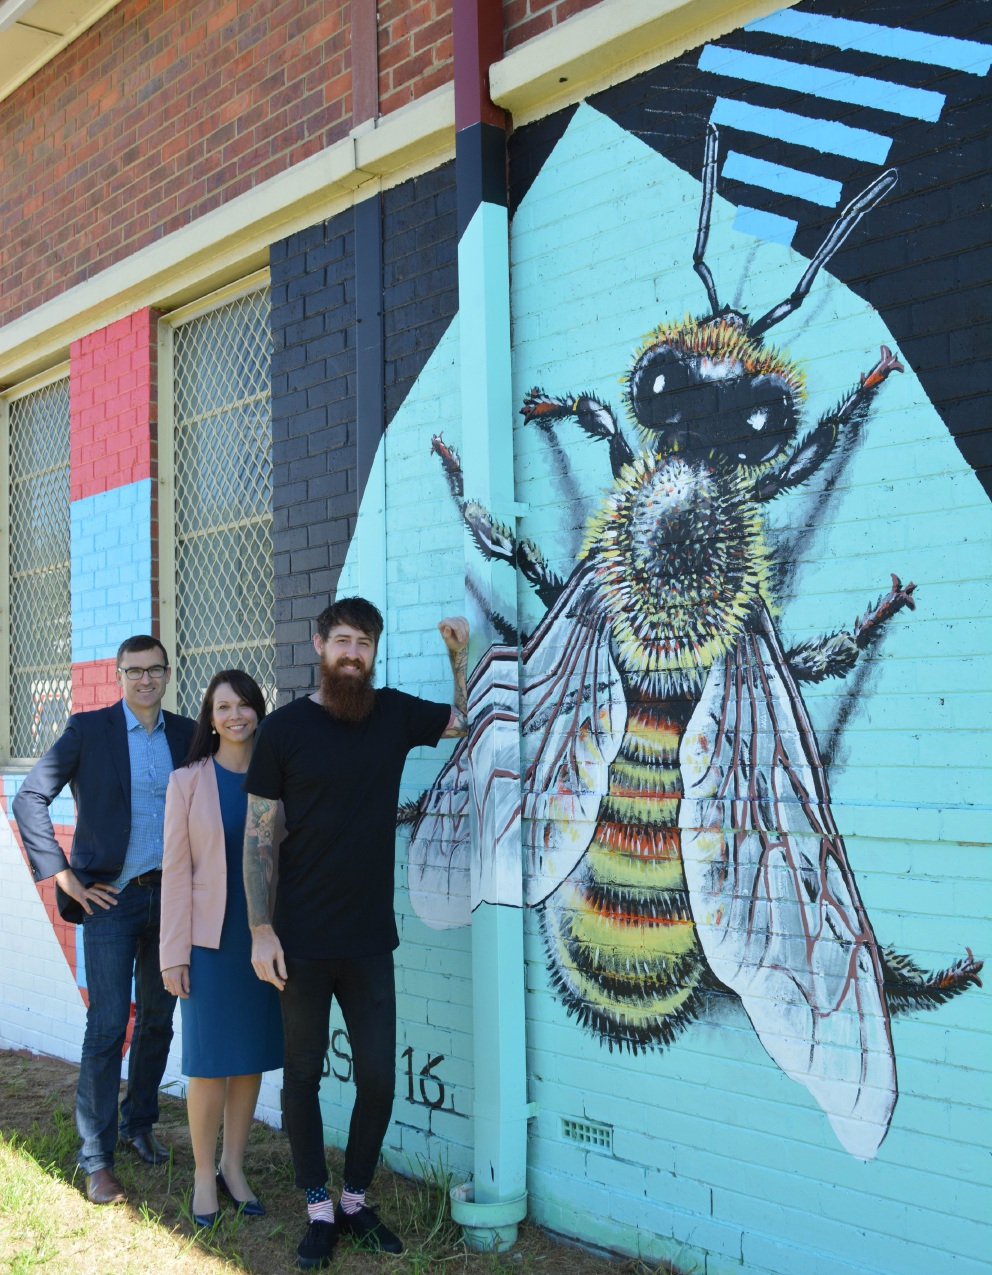 North Perth telephone exchange gets facelift from artist Brenton See